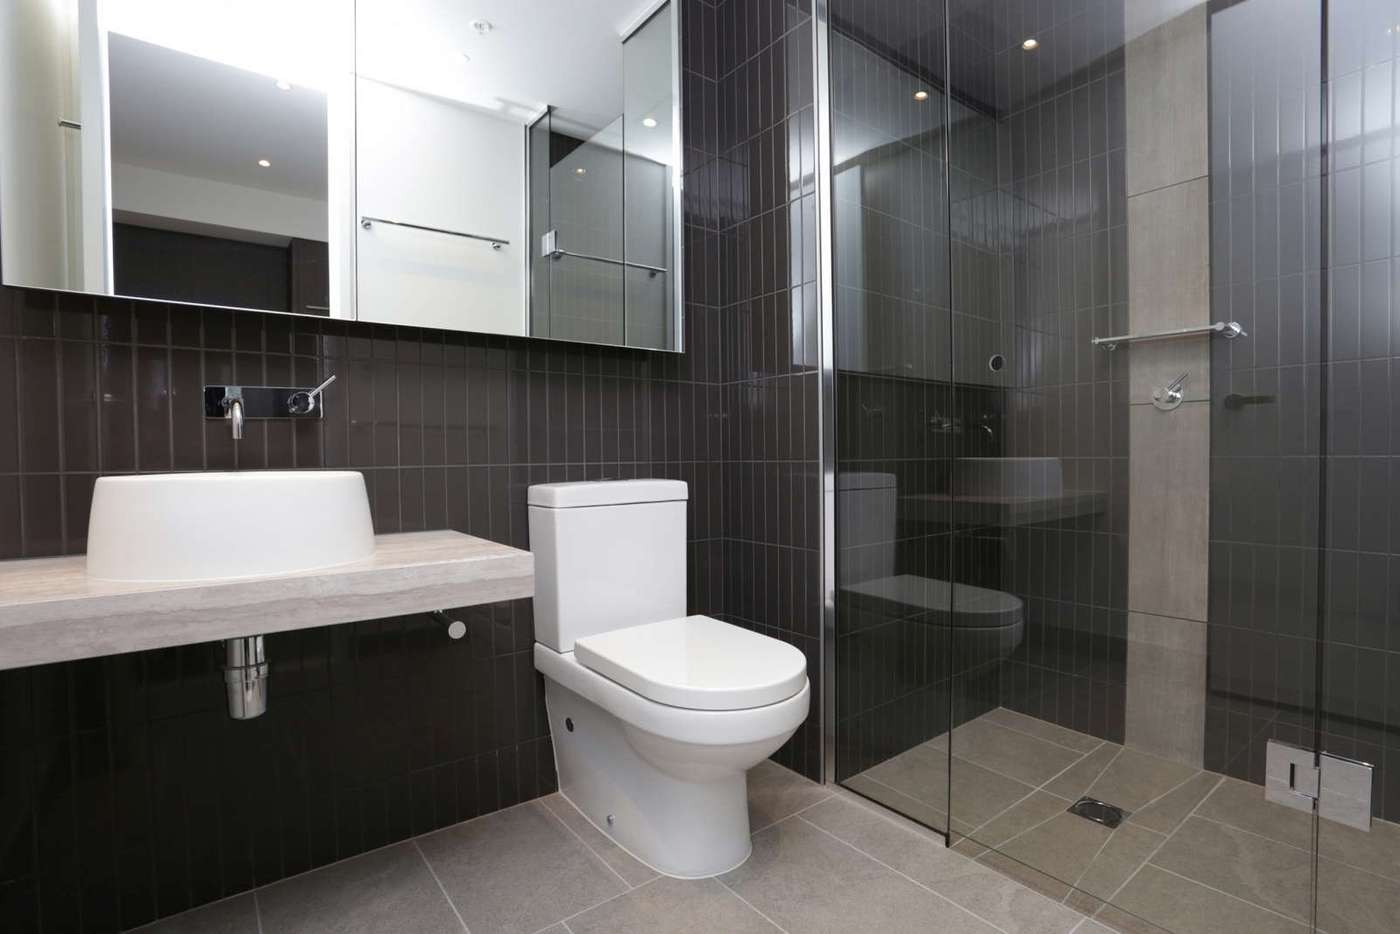 Sixth view of Homely apartment listing, 2510/120 A'Beckett Street, Melbourne VIC 3000